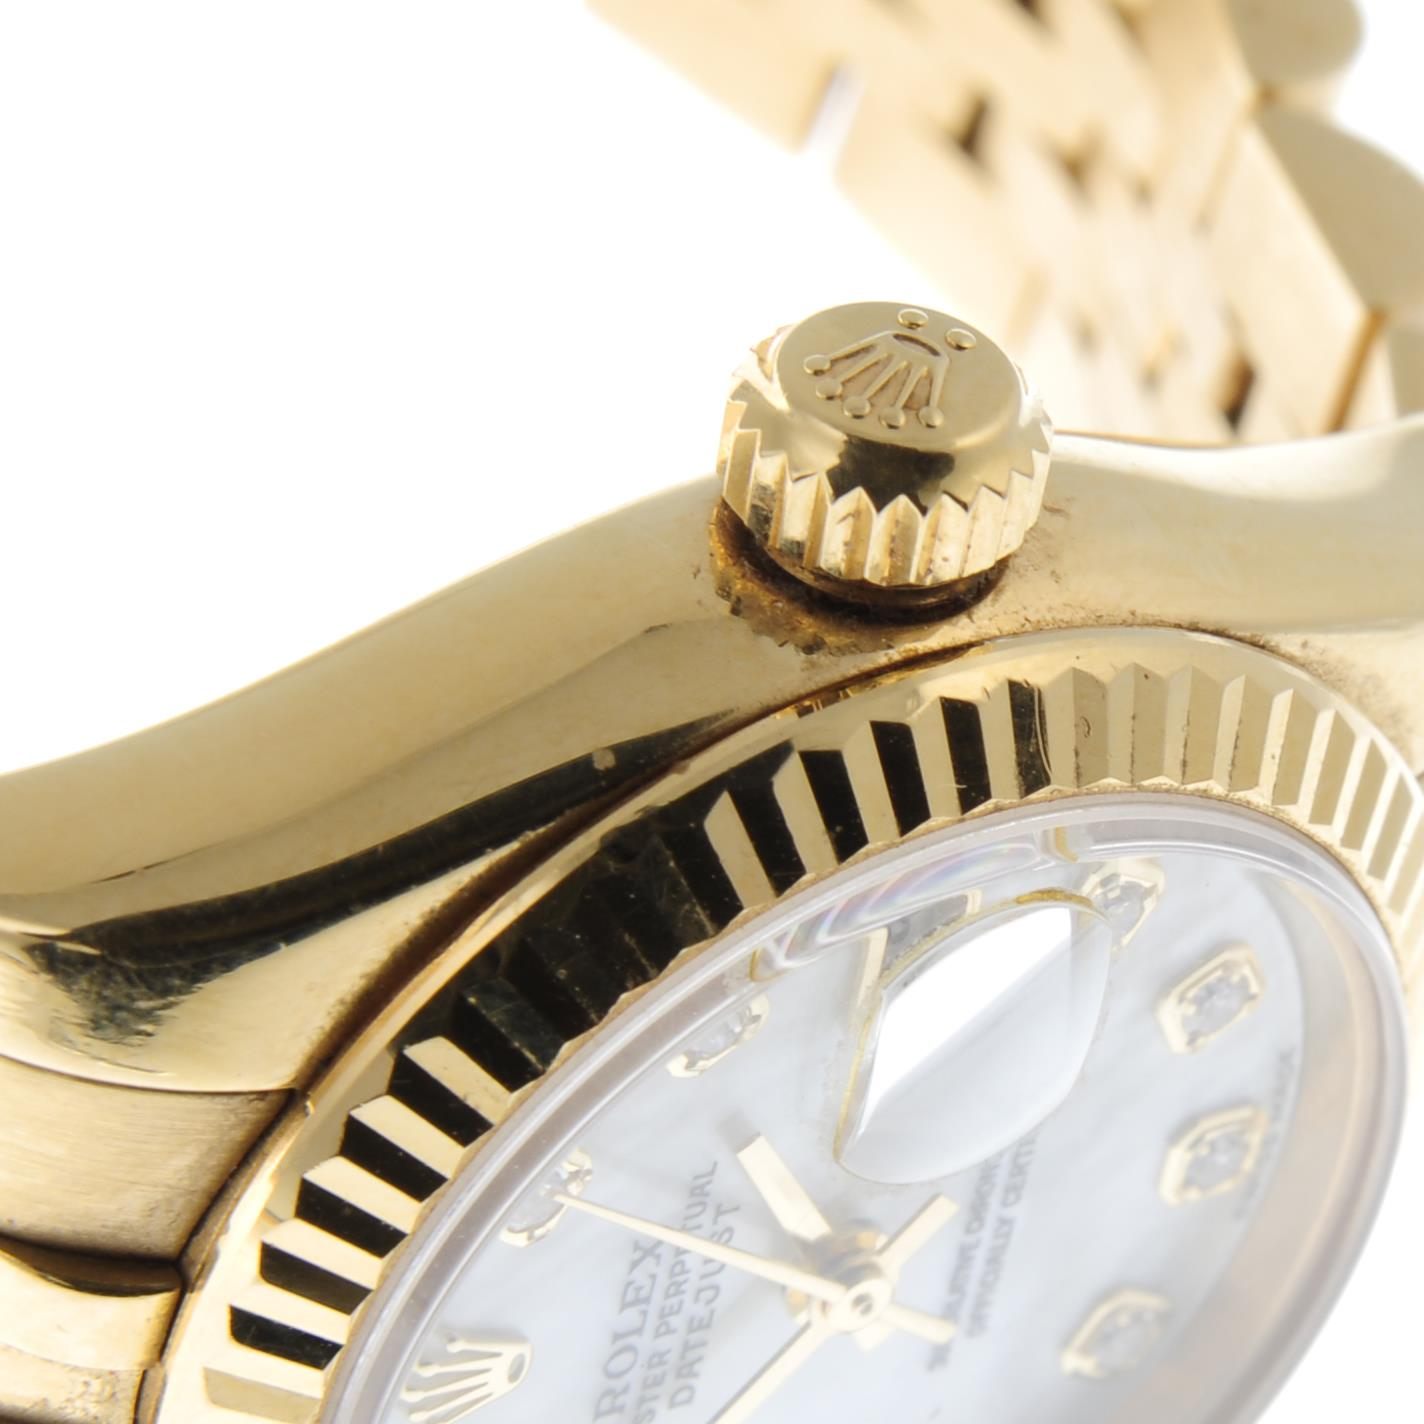 ROLEX - an Oyster Perpetual Datejust bracelet watch. - Image 6 of 6